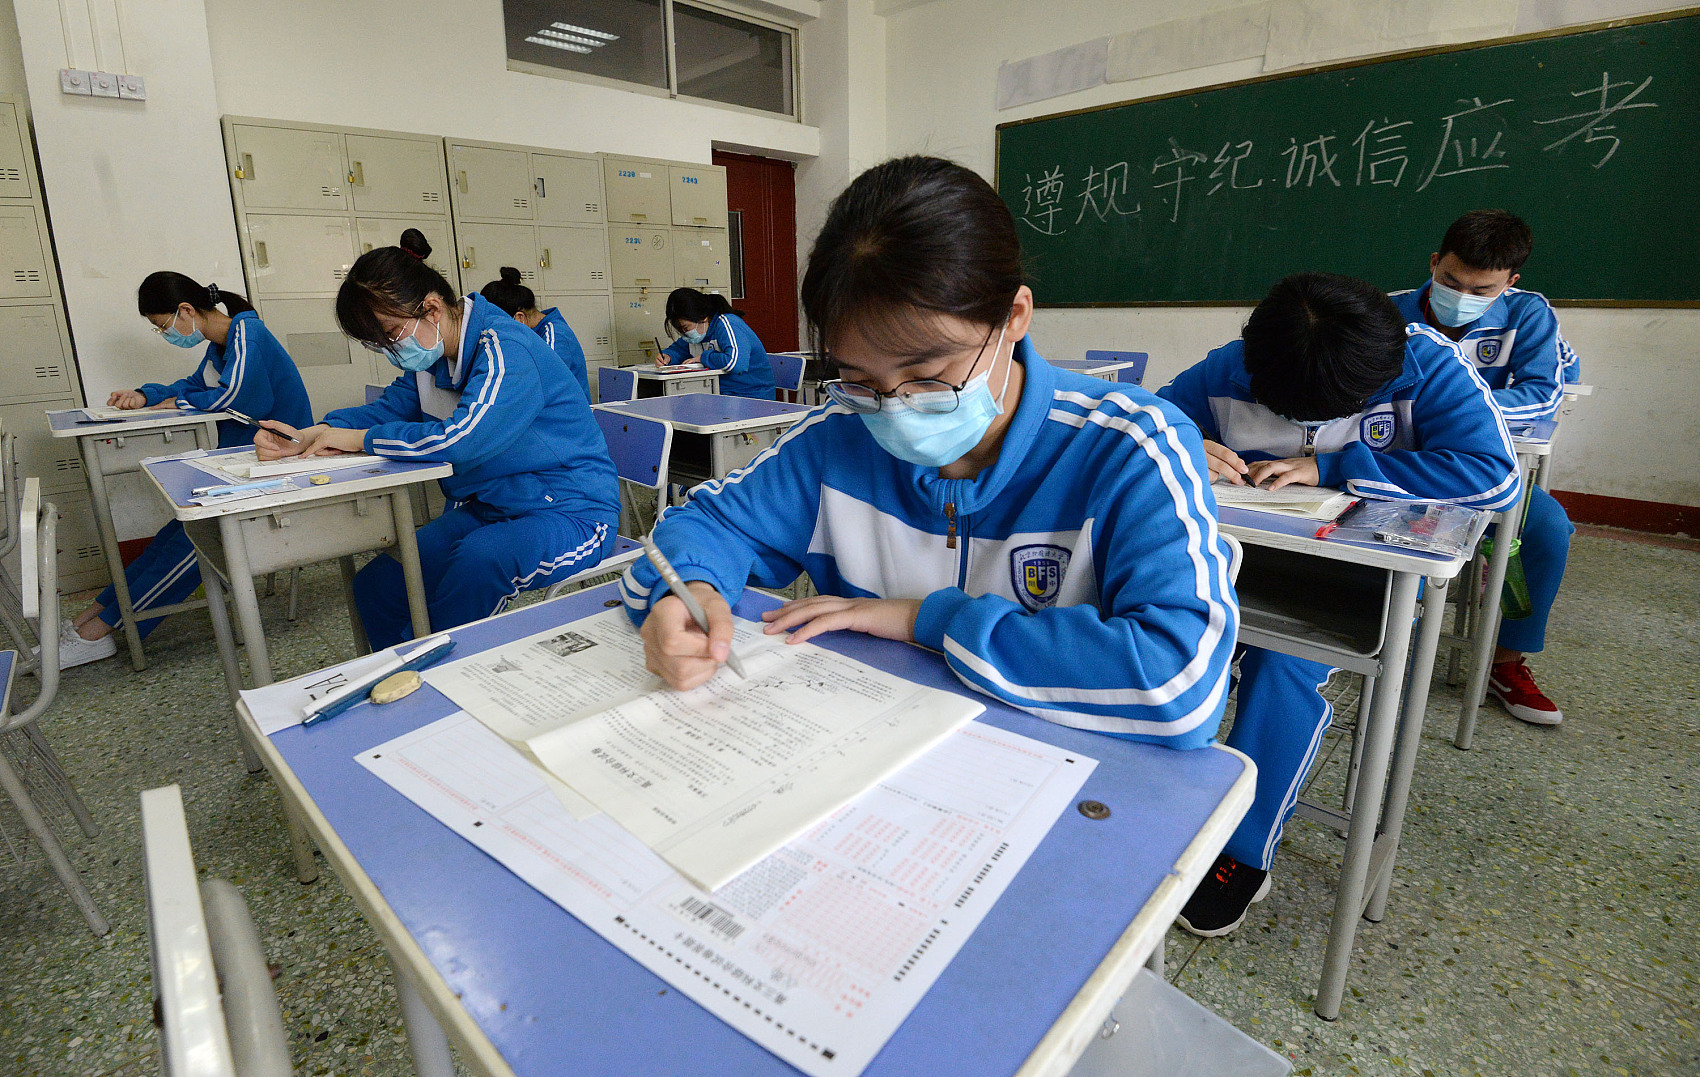 Rigorous COVID-19 prevention for China's college entrance exam